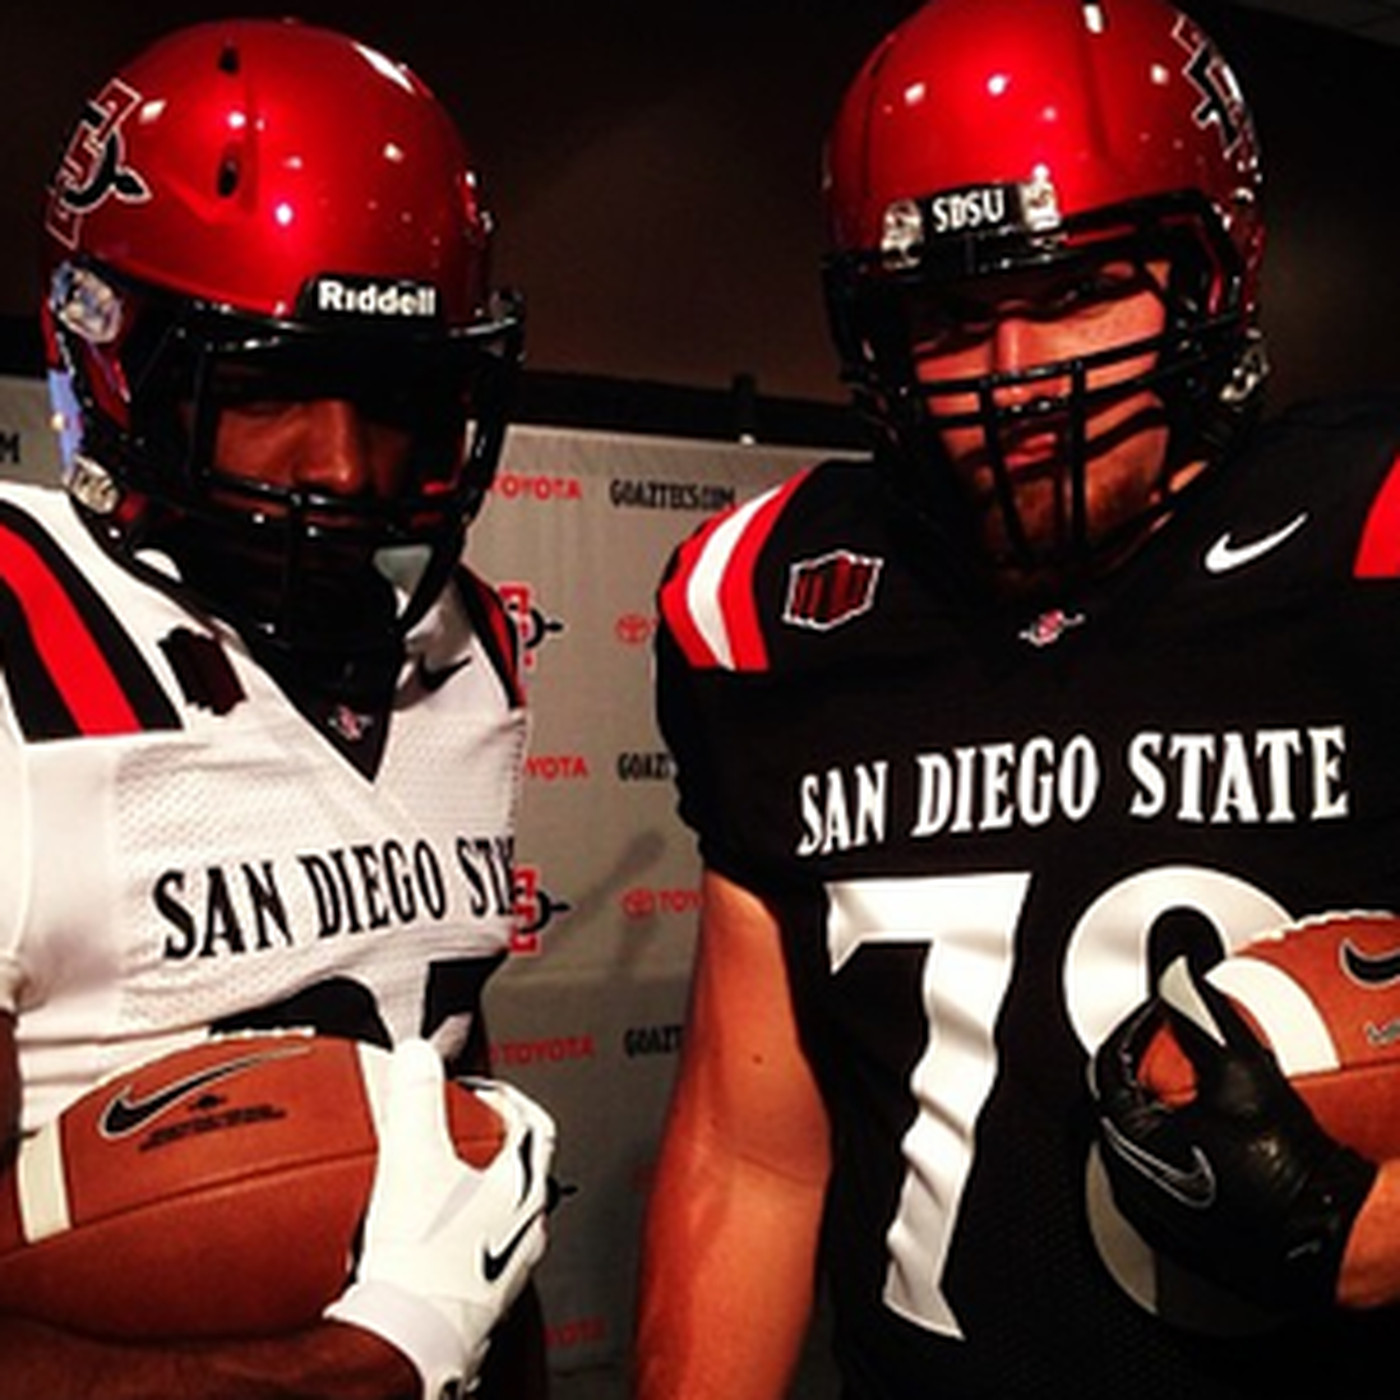 online store 031dc 1fb25 San Diego State has new logo, uniforms - Mountain West ...